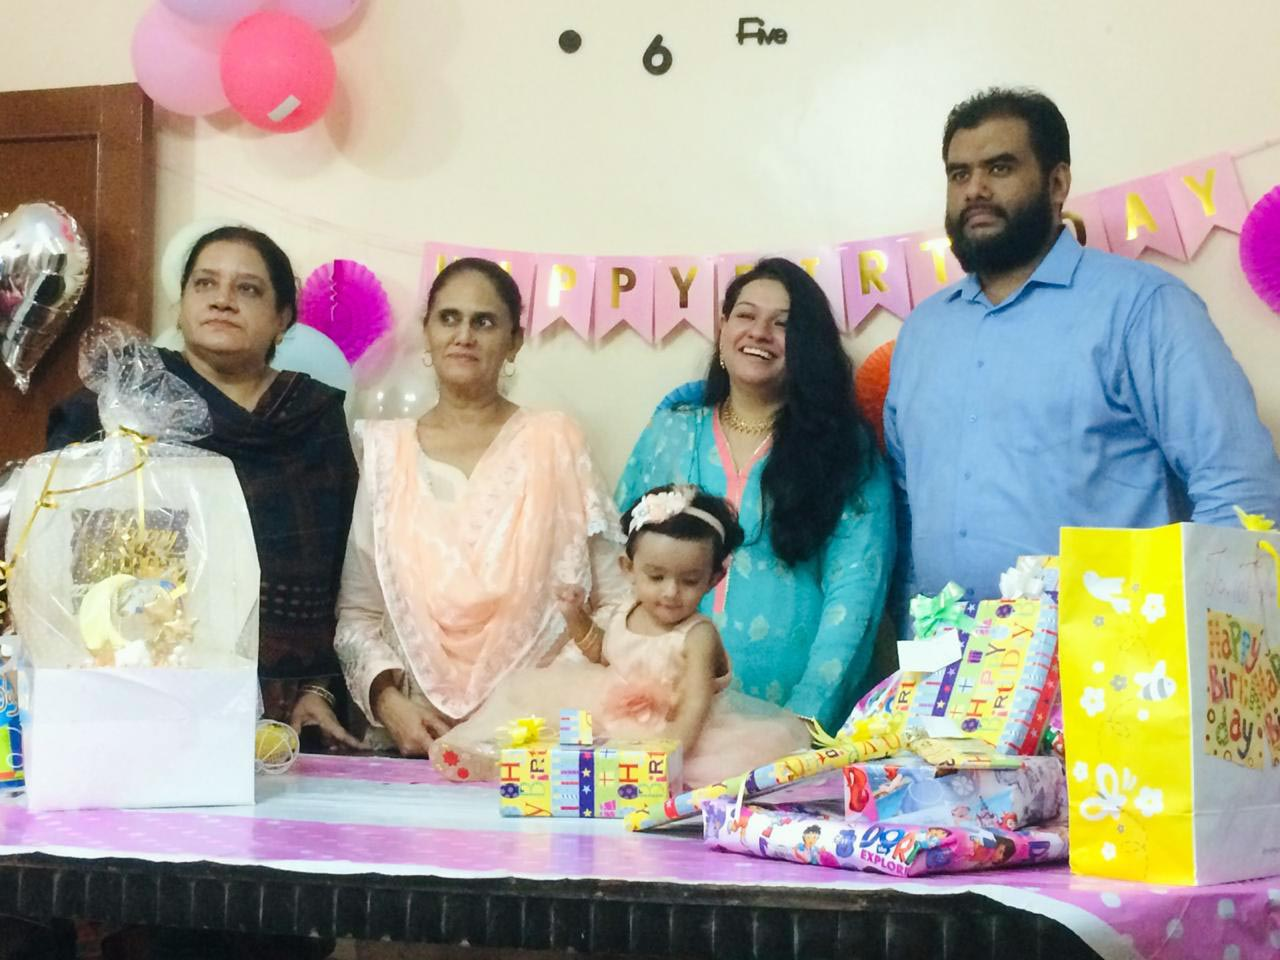 Baby Ayra is very happy with her grandmother (Nani), Naila Khaleeq and Dadi, Rudaba Irshad and parents.